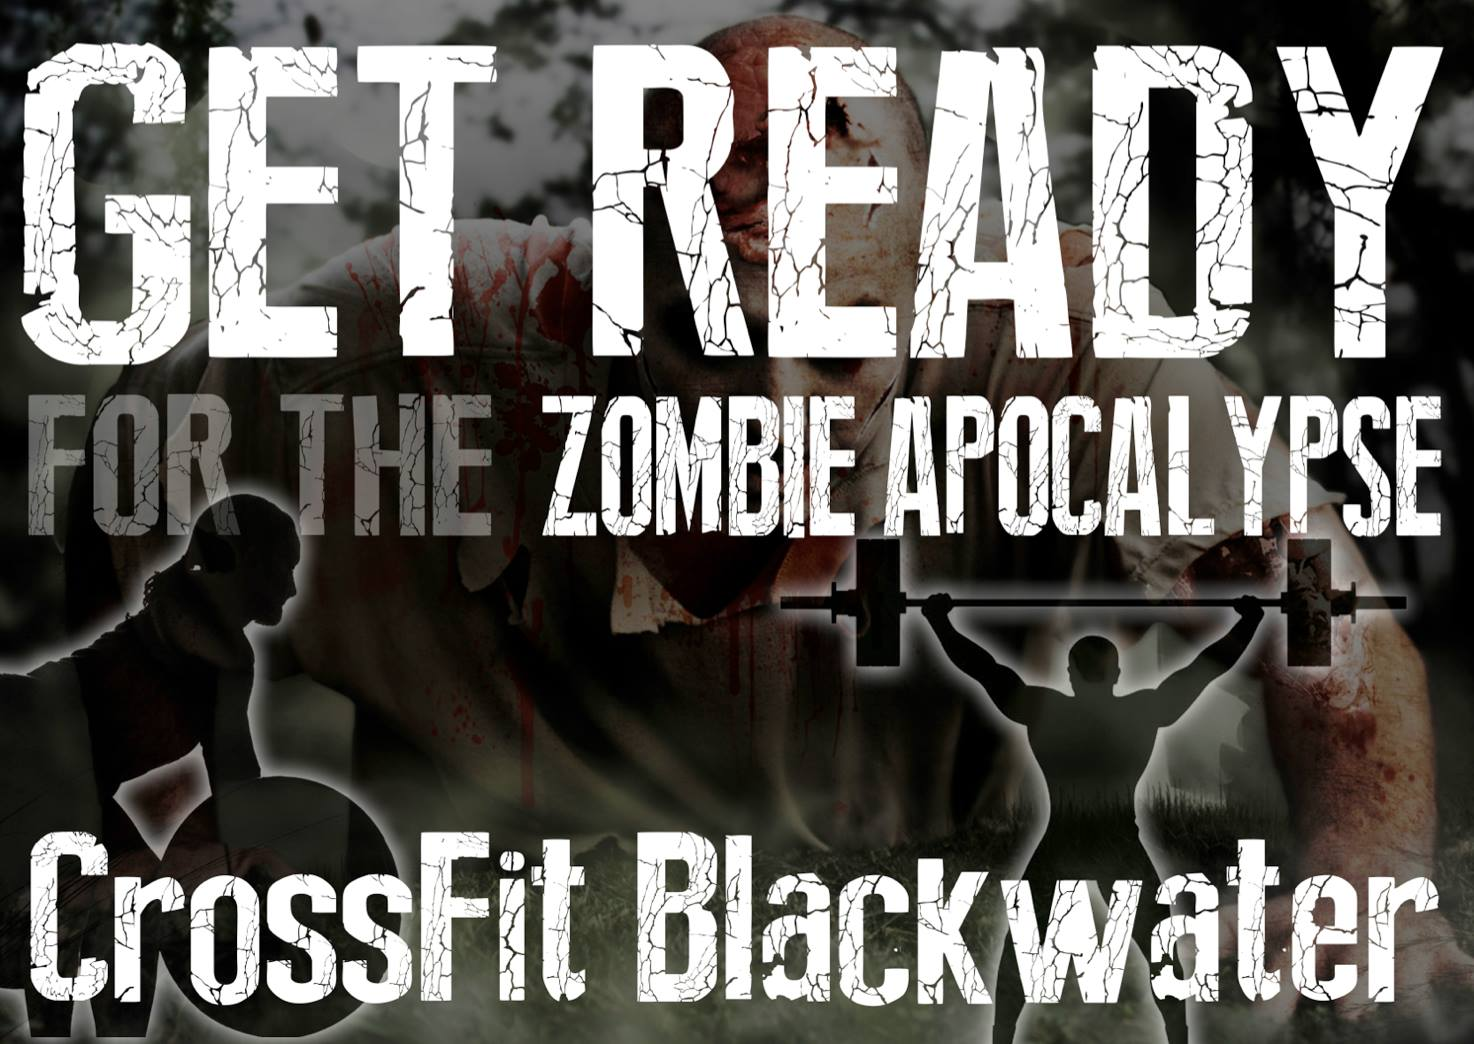 Get ready for the Zombie apocalypse